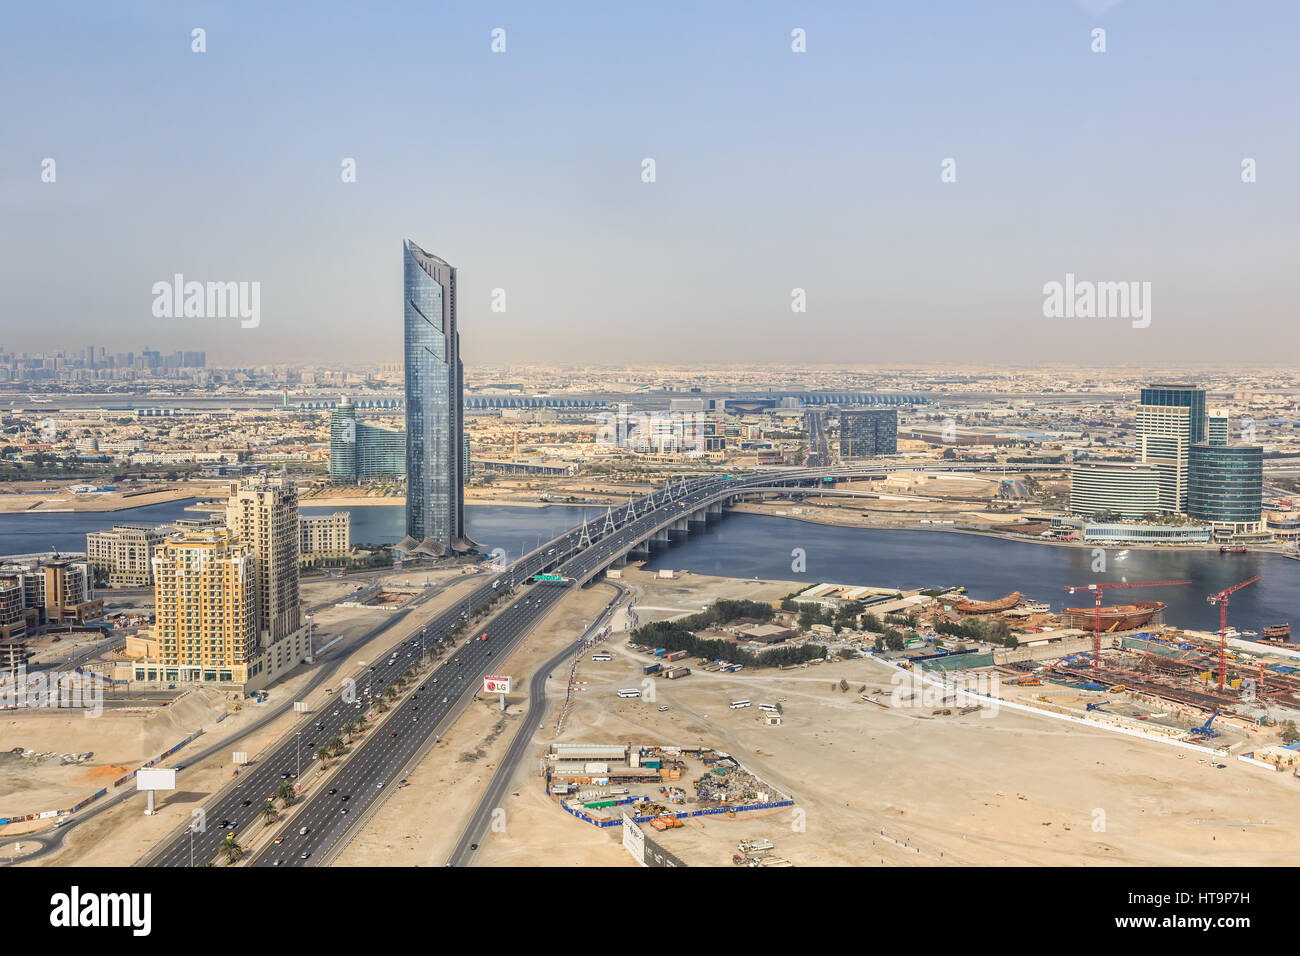 Dubai/UAE March 9, 2017: Airbus A330 from Swis landing at Dubai Airport. - Stock Image